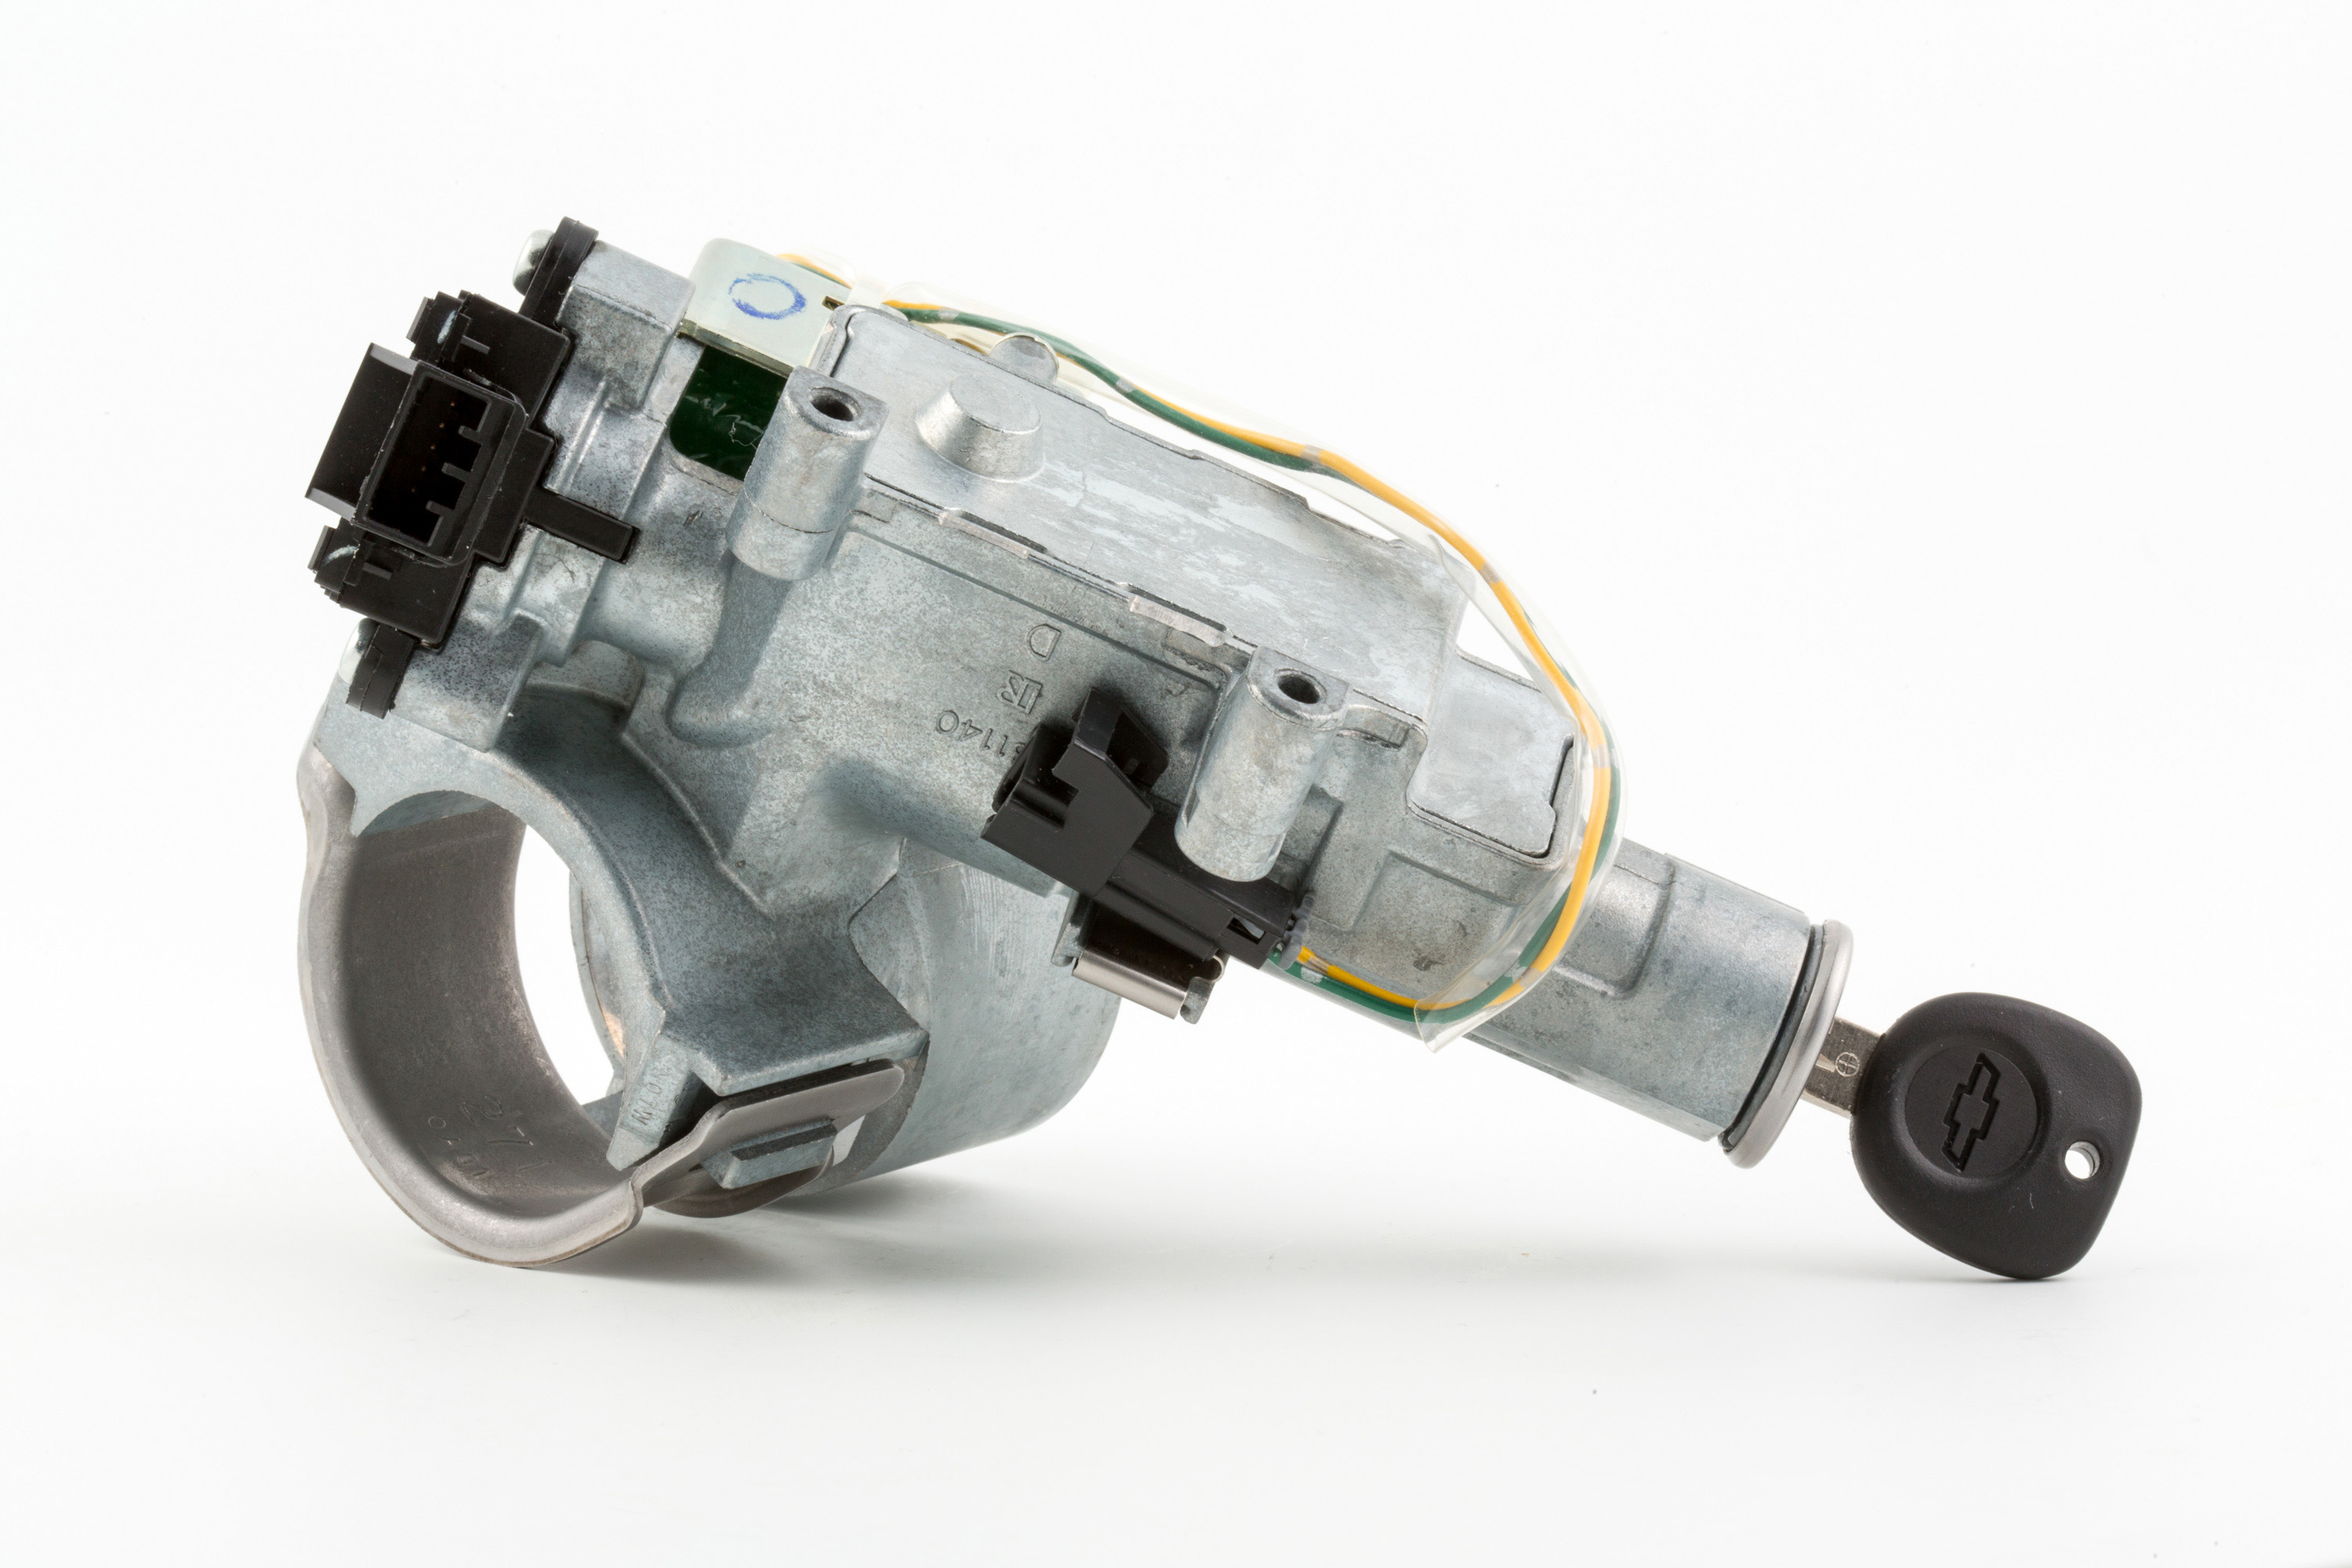 2003 Chevy Impala Ignition Switch Wiring Diagram from plants.gm.com